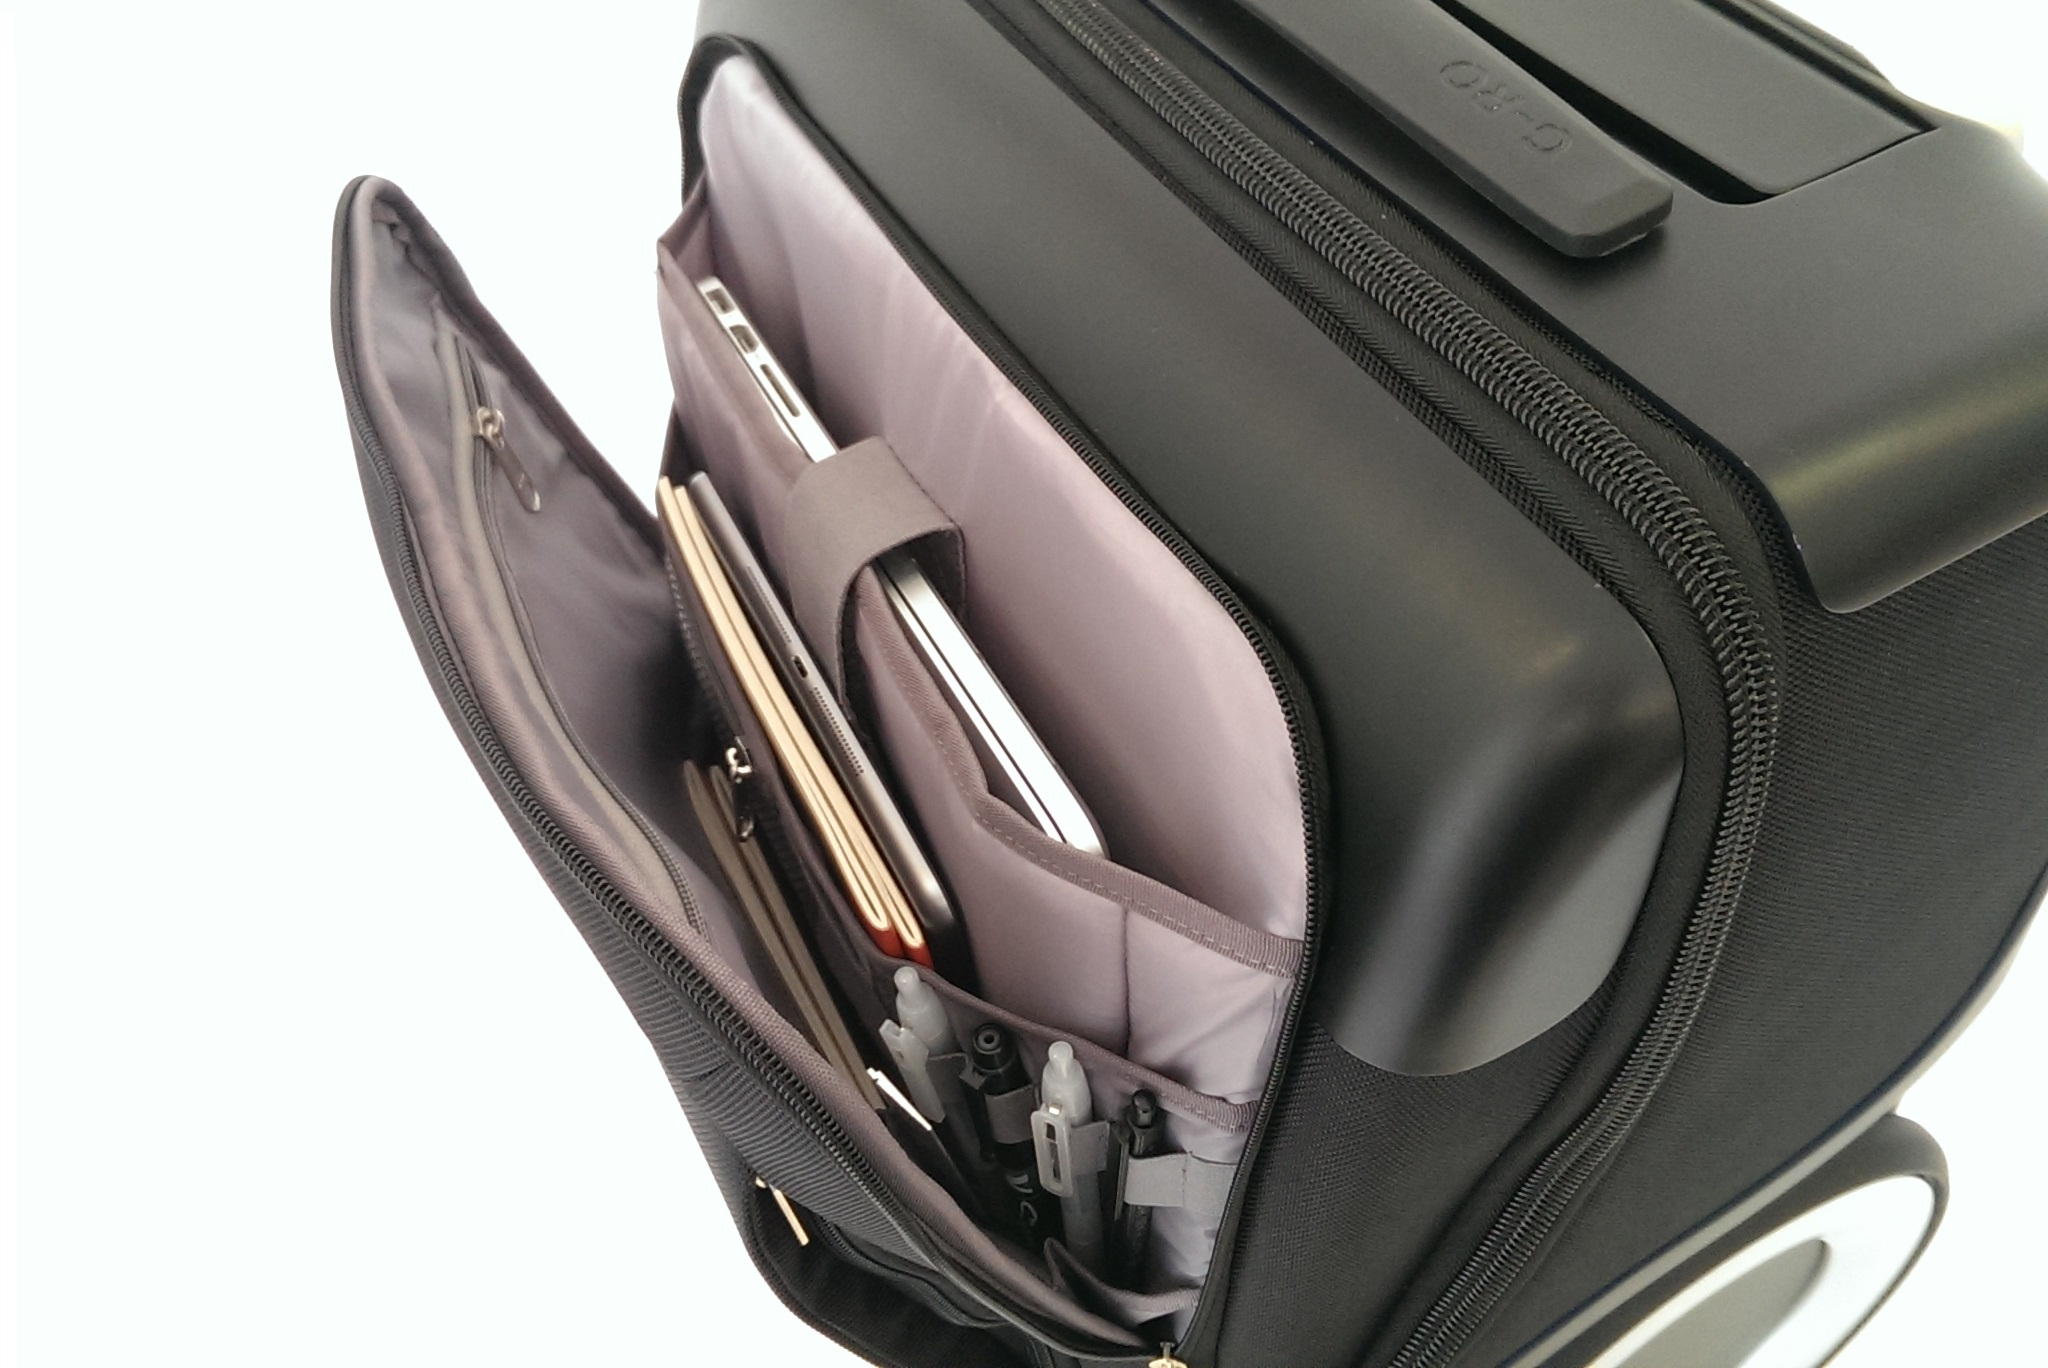 G-RO bags have lots of helpful features, like this work compartment. Photo: courtesy